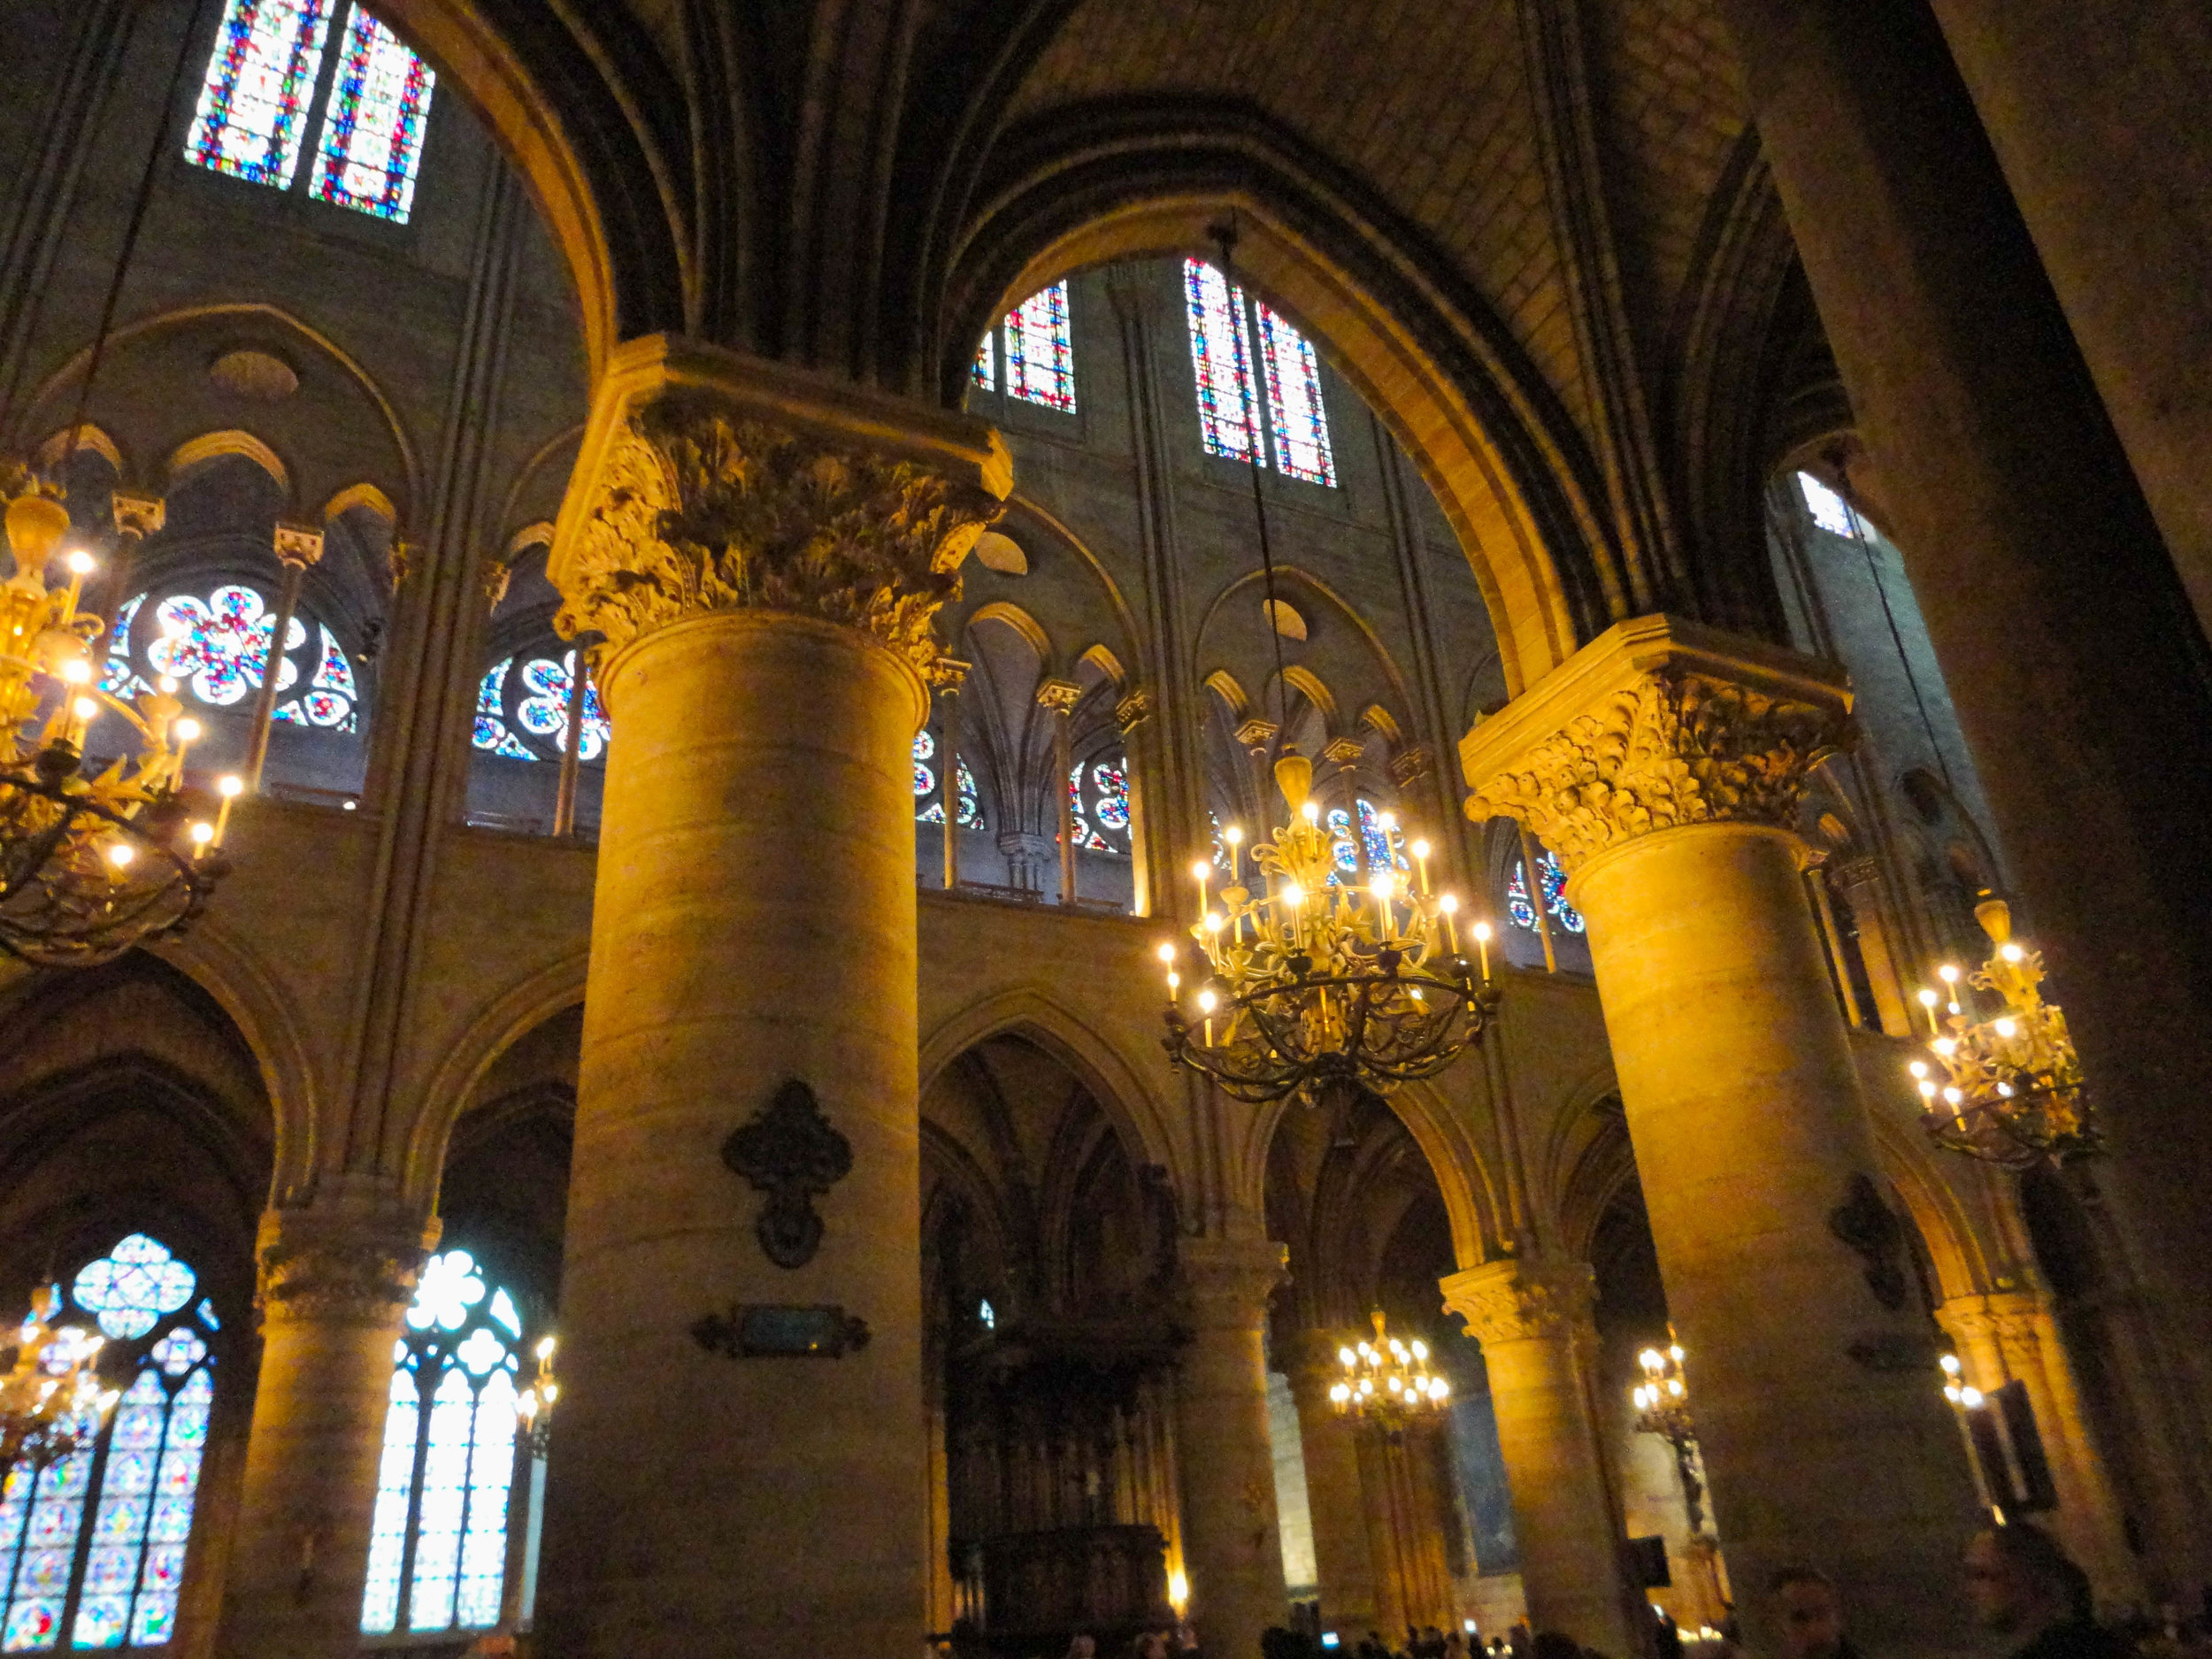 Notre Dame interior before the fire